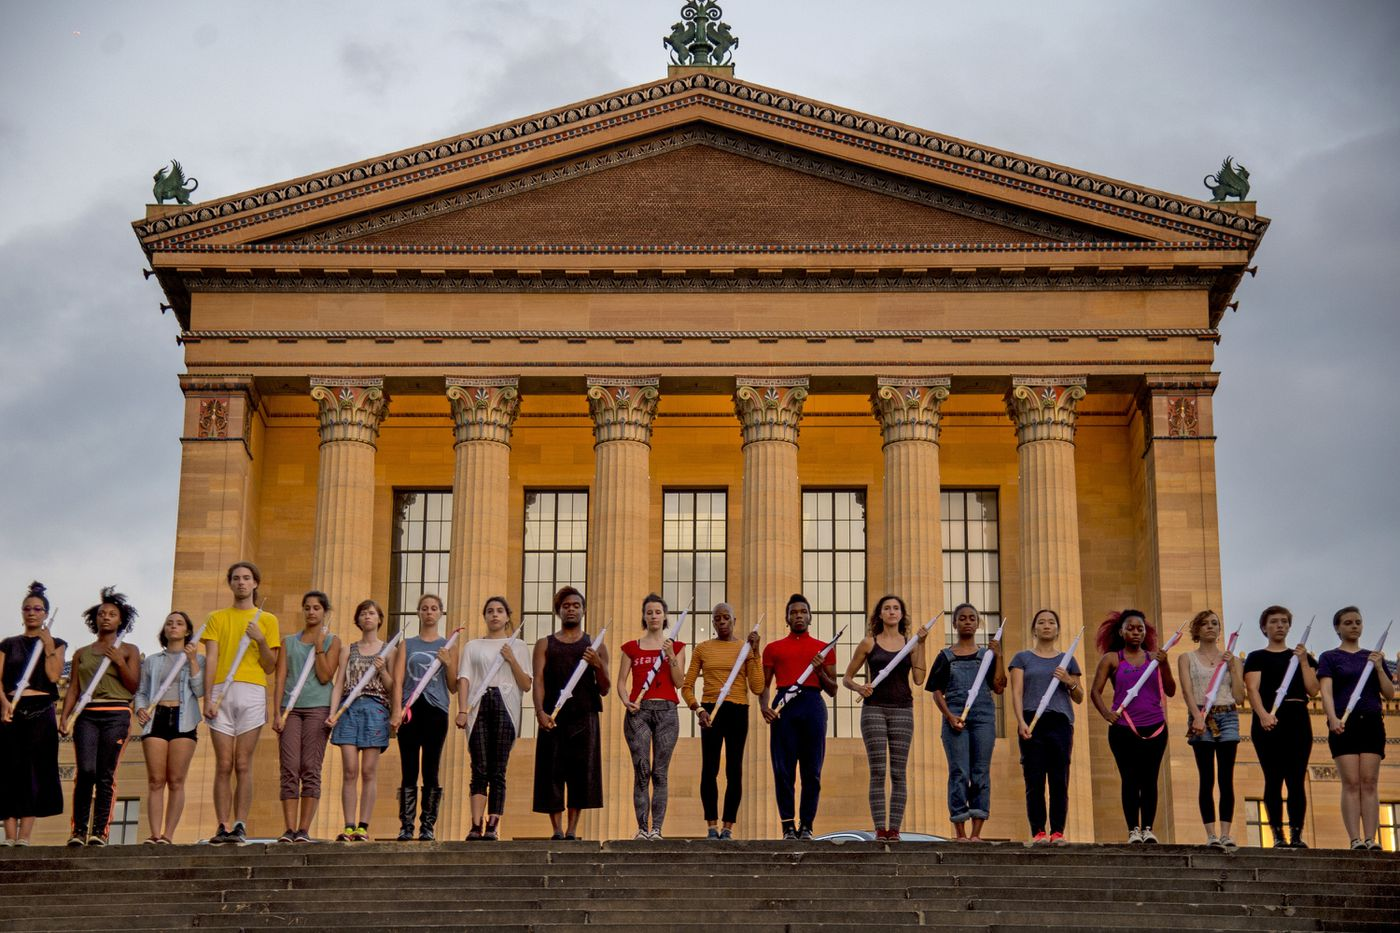 Philadelphia Museum of Art performance will be a funeral for weapons in a city of violence